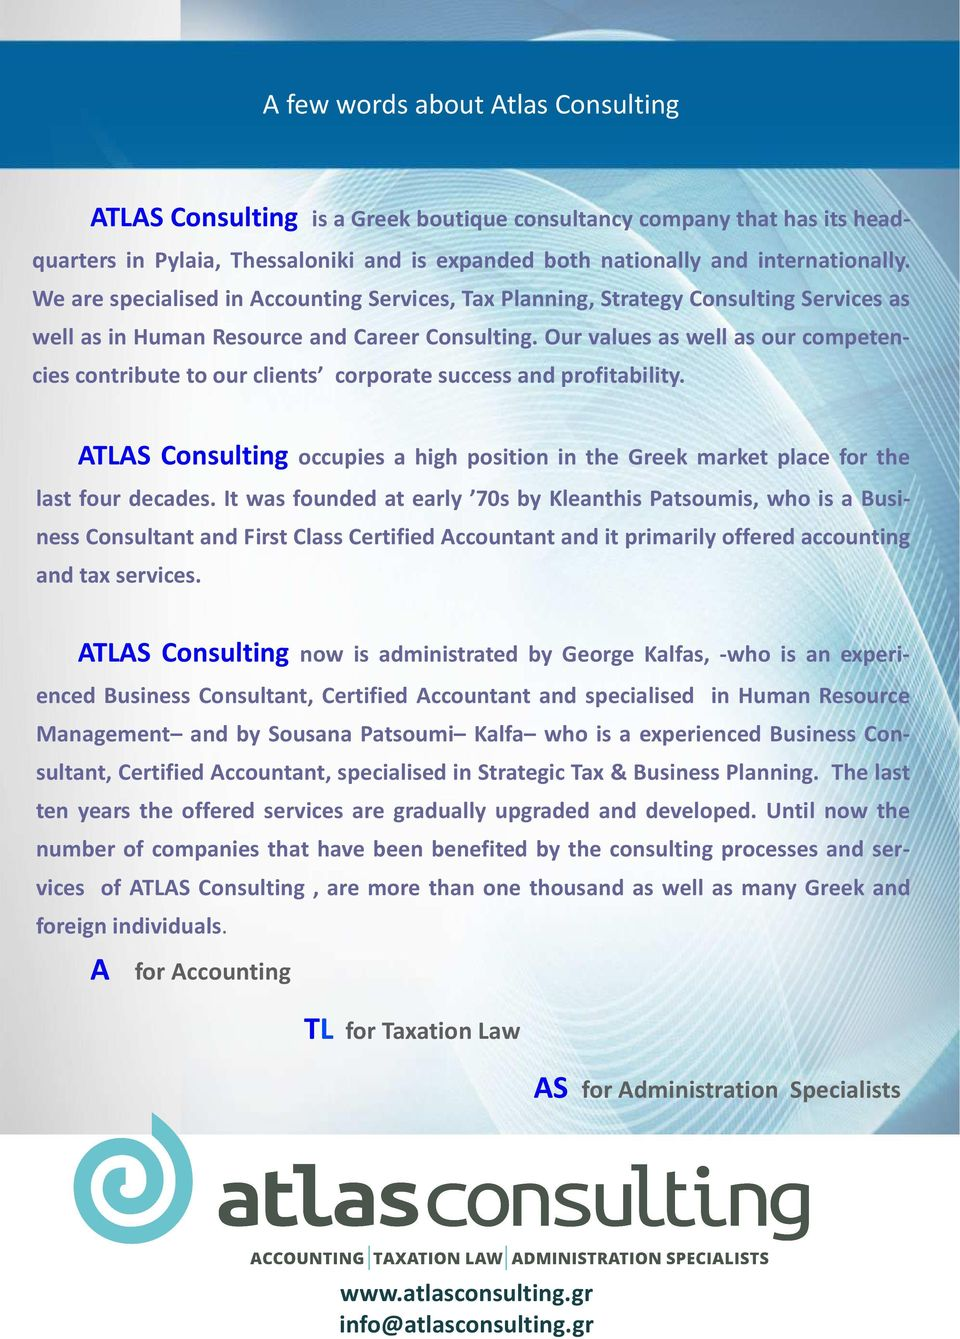 Our values as well as our competencies contribute to our clients corporate success and profitability. ATLAS Consulting occupies a high position in the Greek market place for the last four decades.